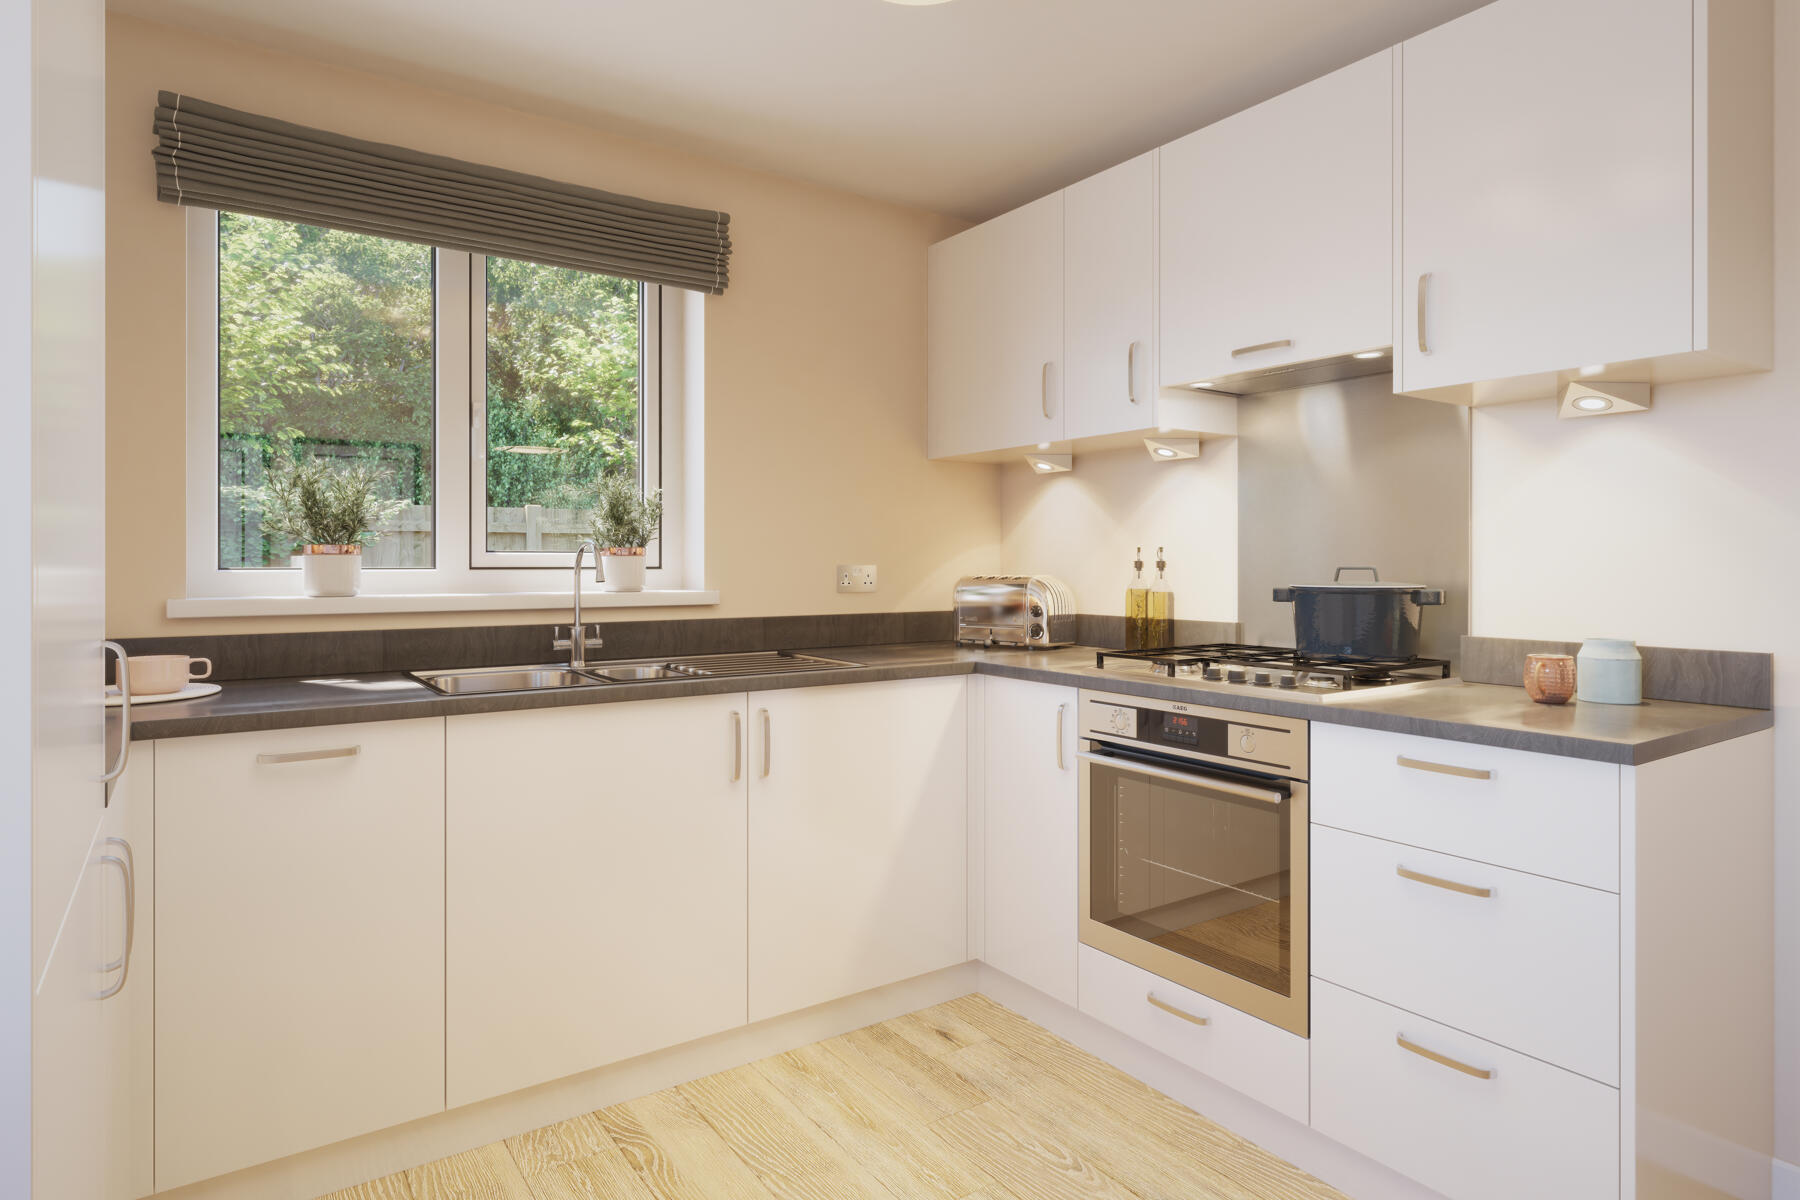 Aldenham Kitchen_1800x1200